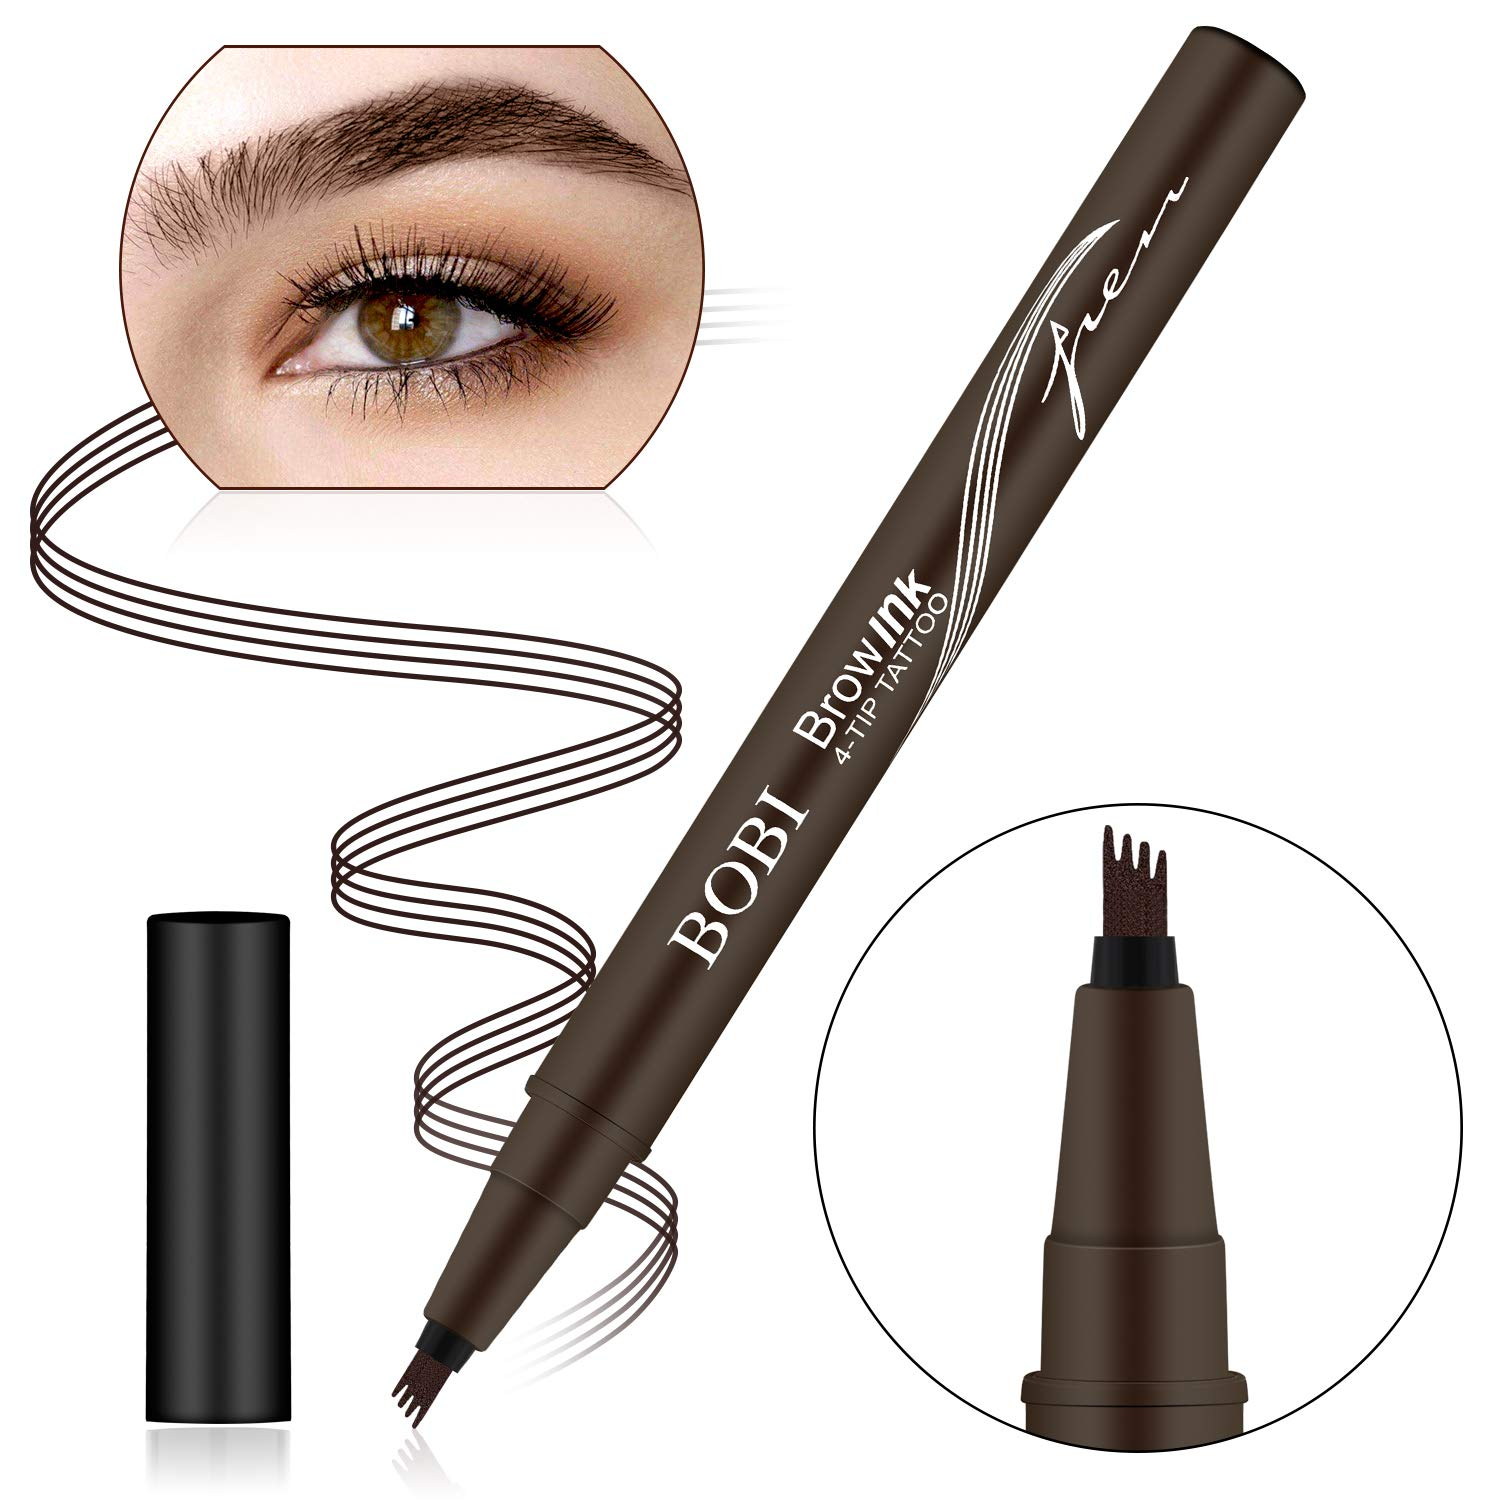 Eyebrow Tattoo Pen, Microblading Eyebrow Pen, Waterproof Eyebrow Pencil for Professional Makeup, Draws Natural Brow Hairs & Fills in Sparse Areas & Gaps, Lasting eye makeup (DEEP BROWN)